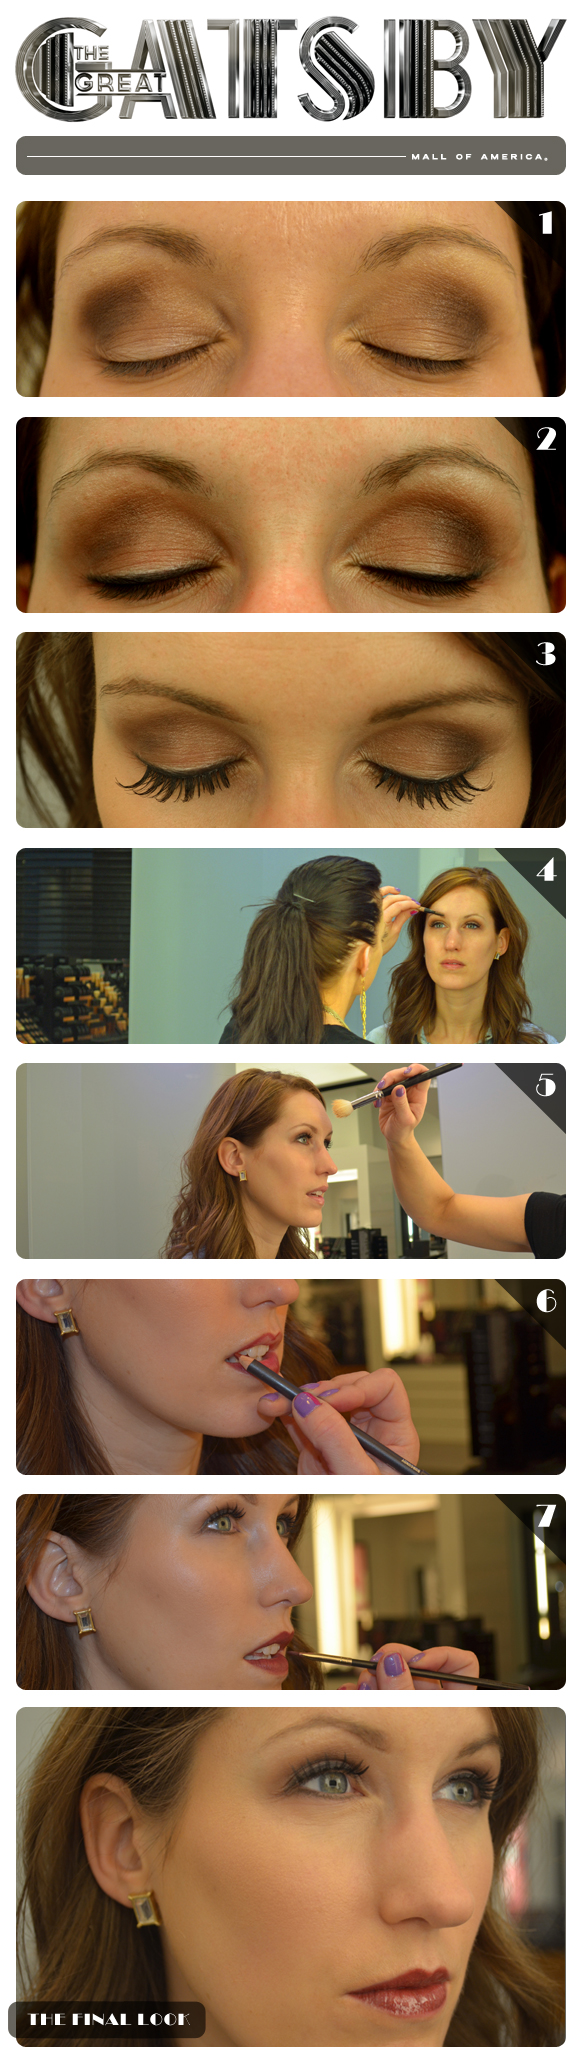 Great Gatsby Makeup, inspiration for Mobella Events, Event Planner Orlando, www.mobellaevents.com